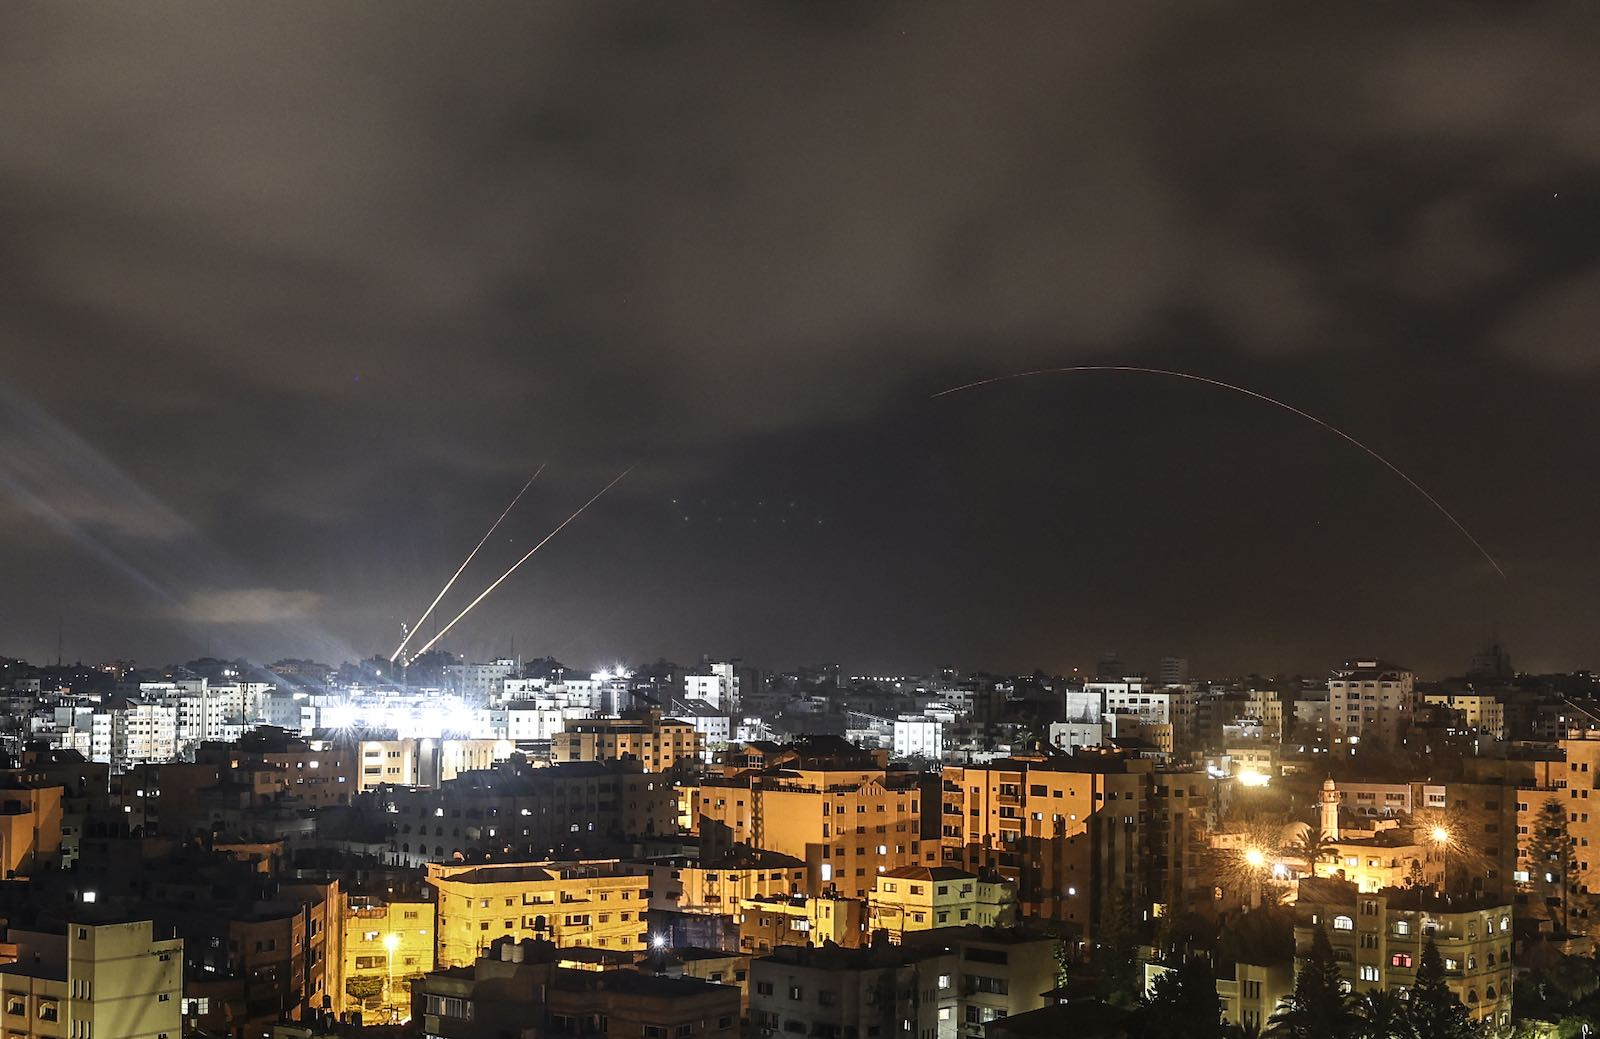 Rockets are fired from the Gaza Strip just before the start of a ceasefire brokered by Egypt between Israel and the ruling Islamist movement Hamas, 21 on May 2021 in Gaza City (Mahmud Hams/AFP via Getty Images)